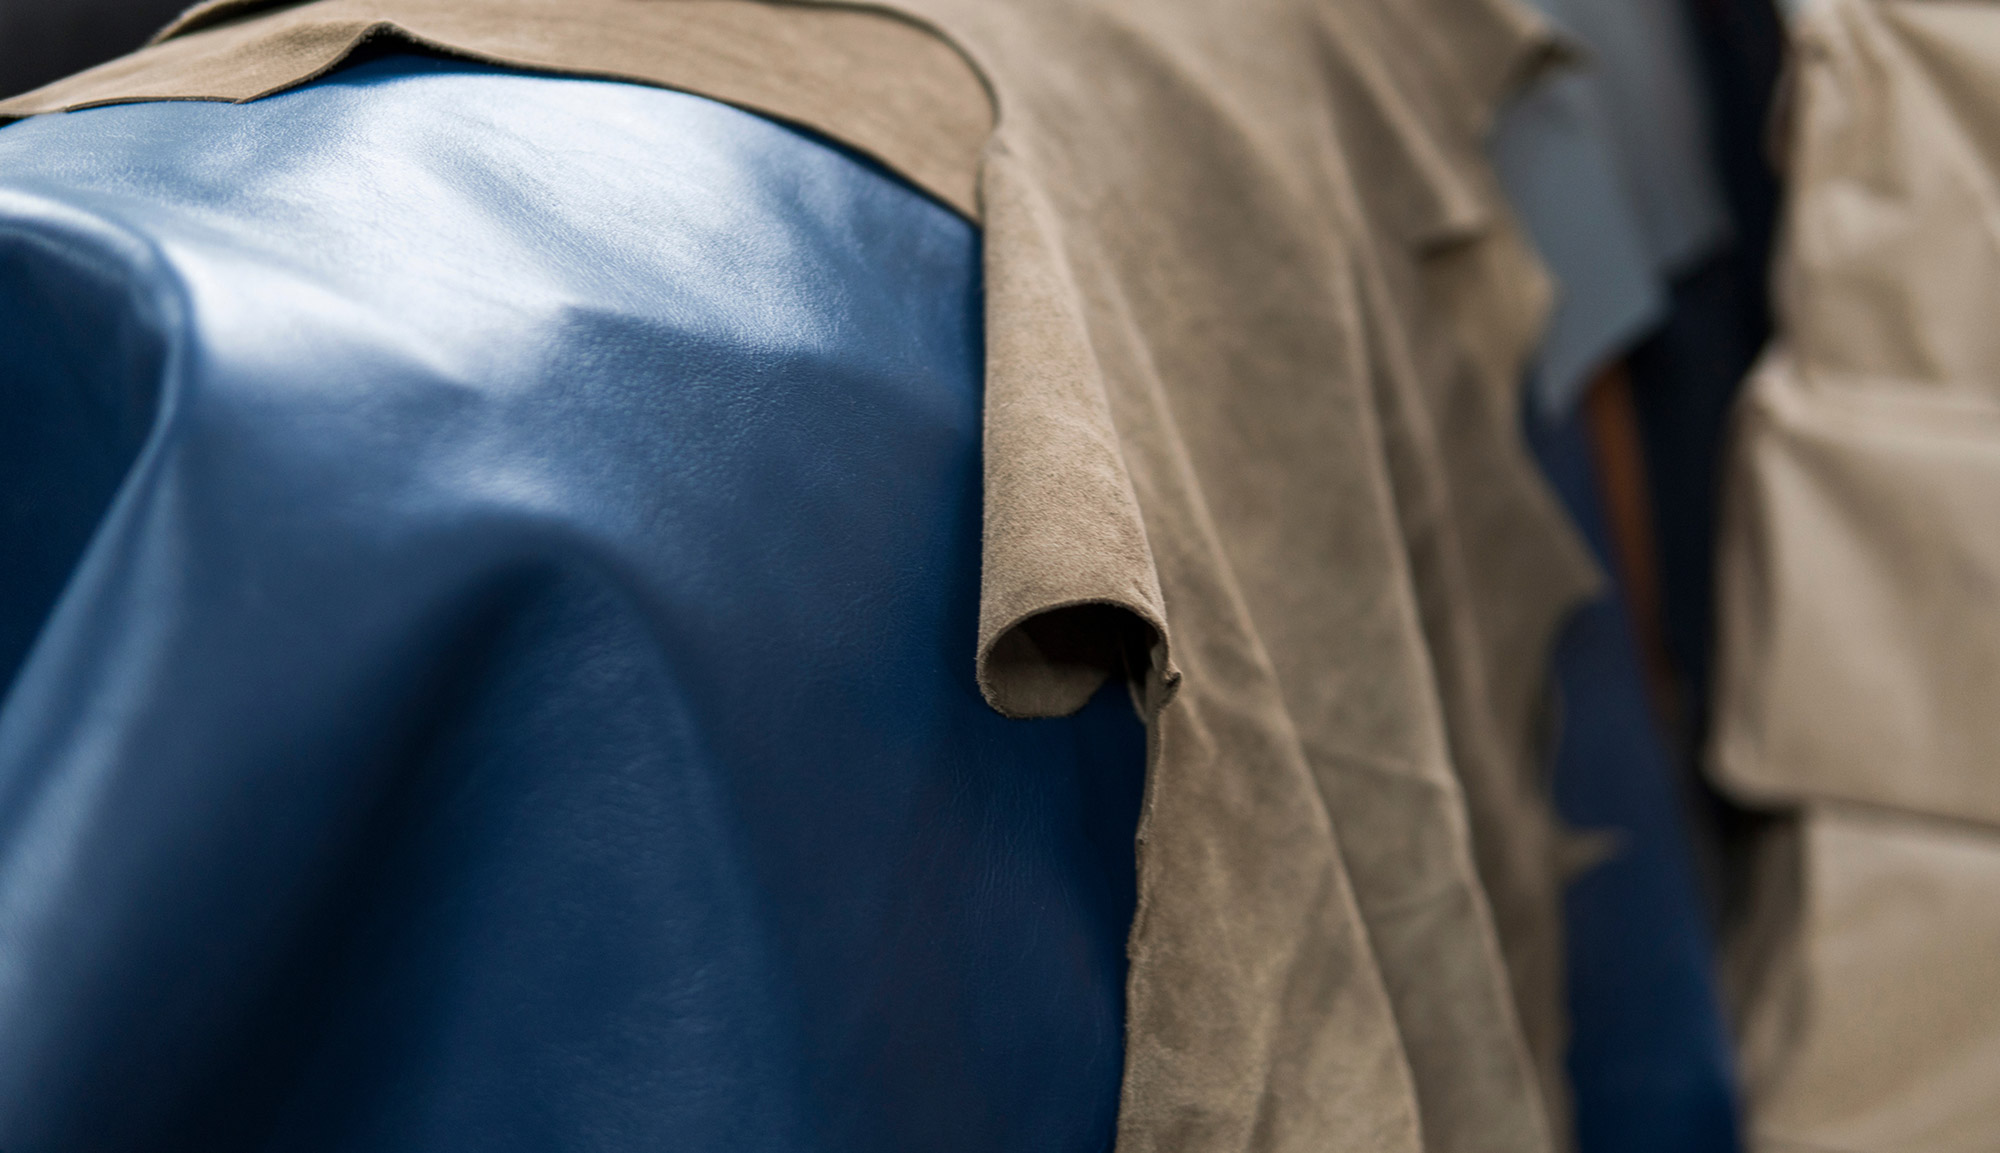 Transparency on how leather is made is crucial